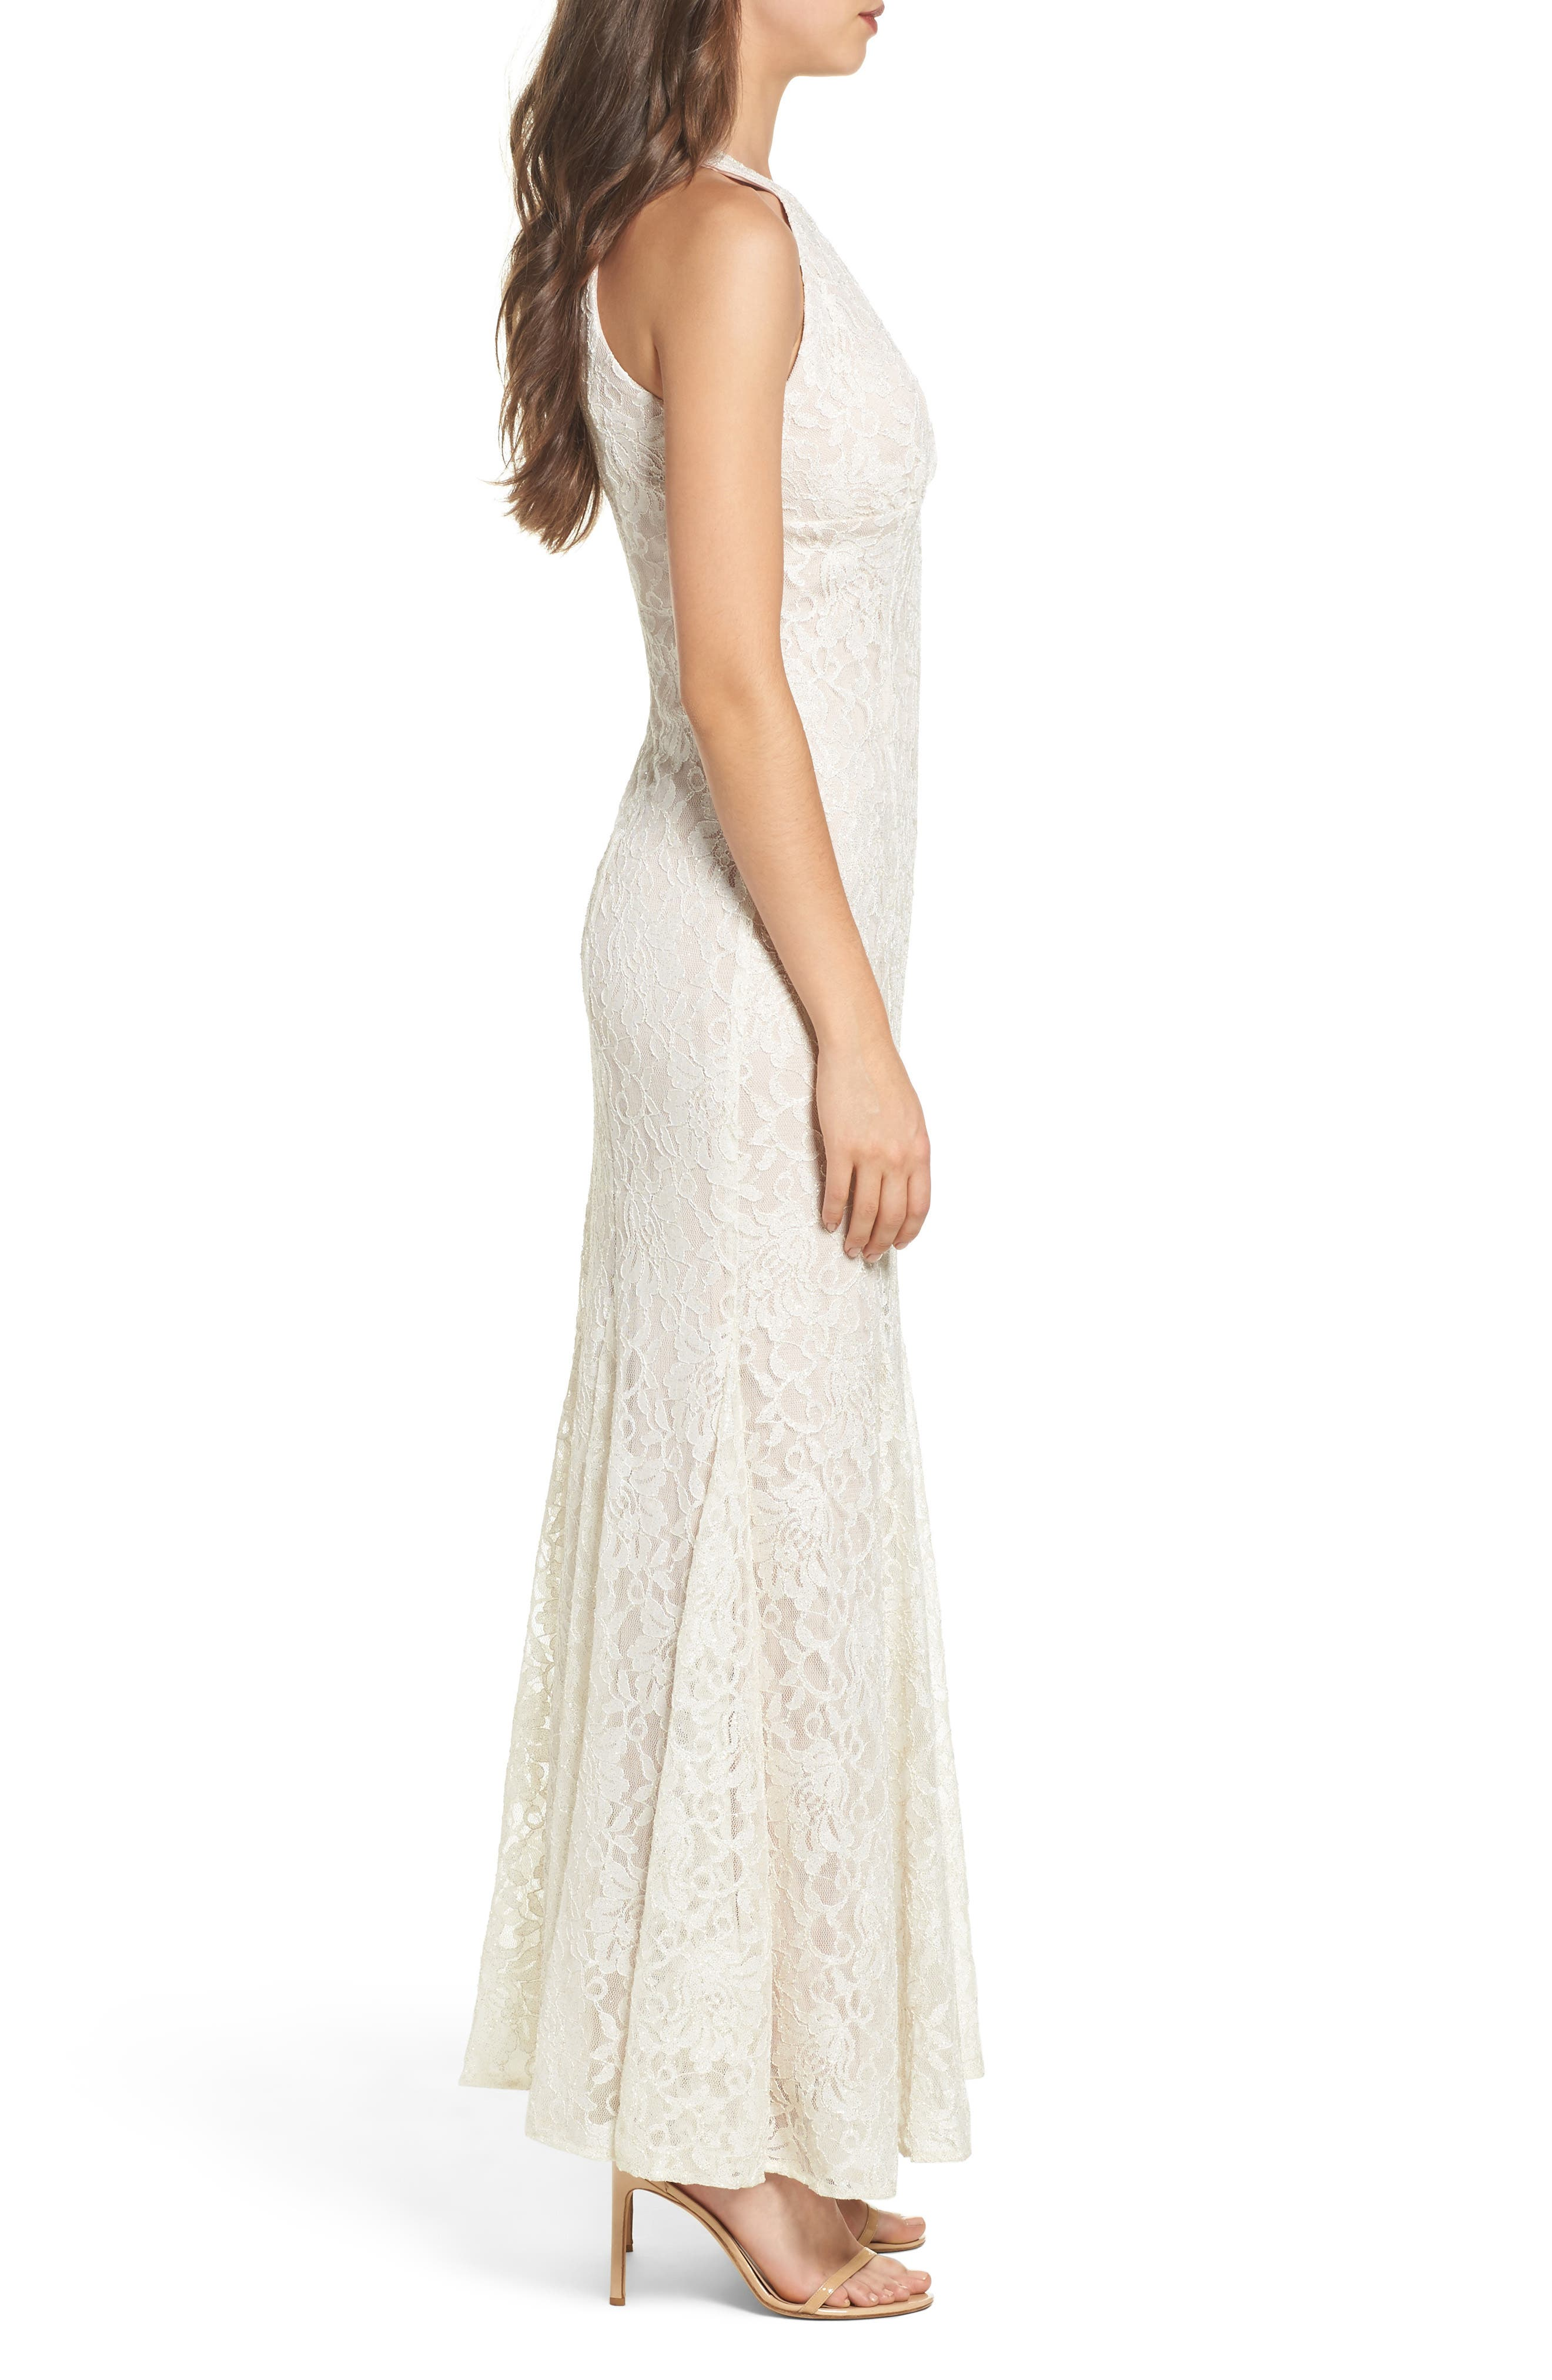 Scallop Detail Lace Gown,                             Alternate thumbnail 3, color,                             Ivory/ Nude